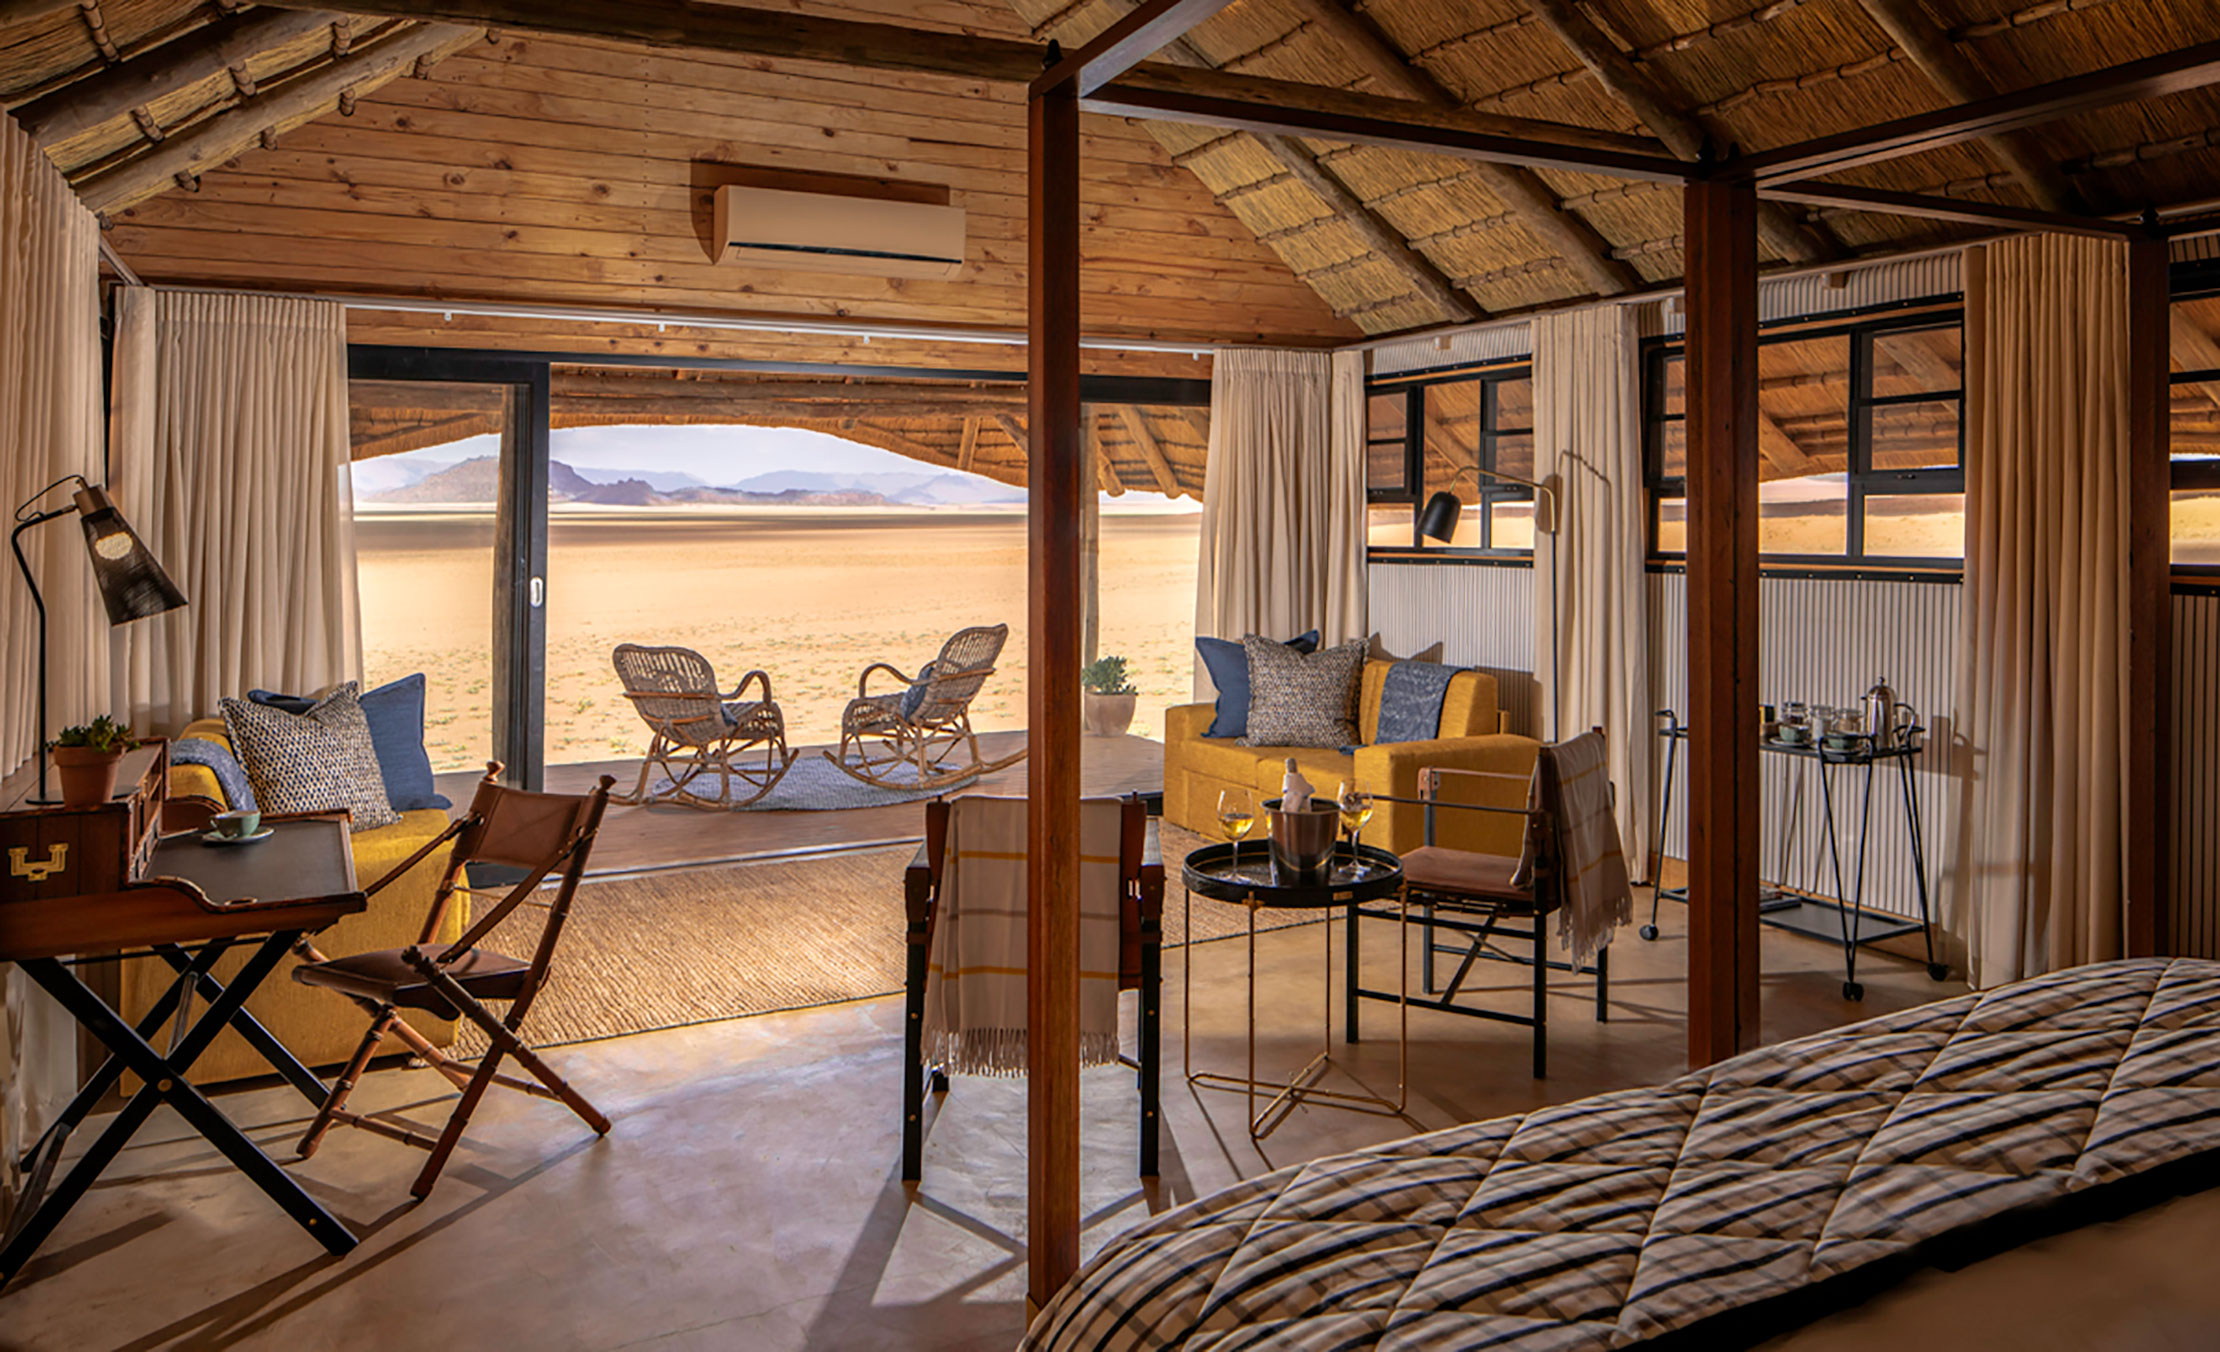 An interior view of the bedroom at Kwessi Dunes